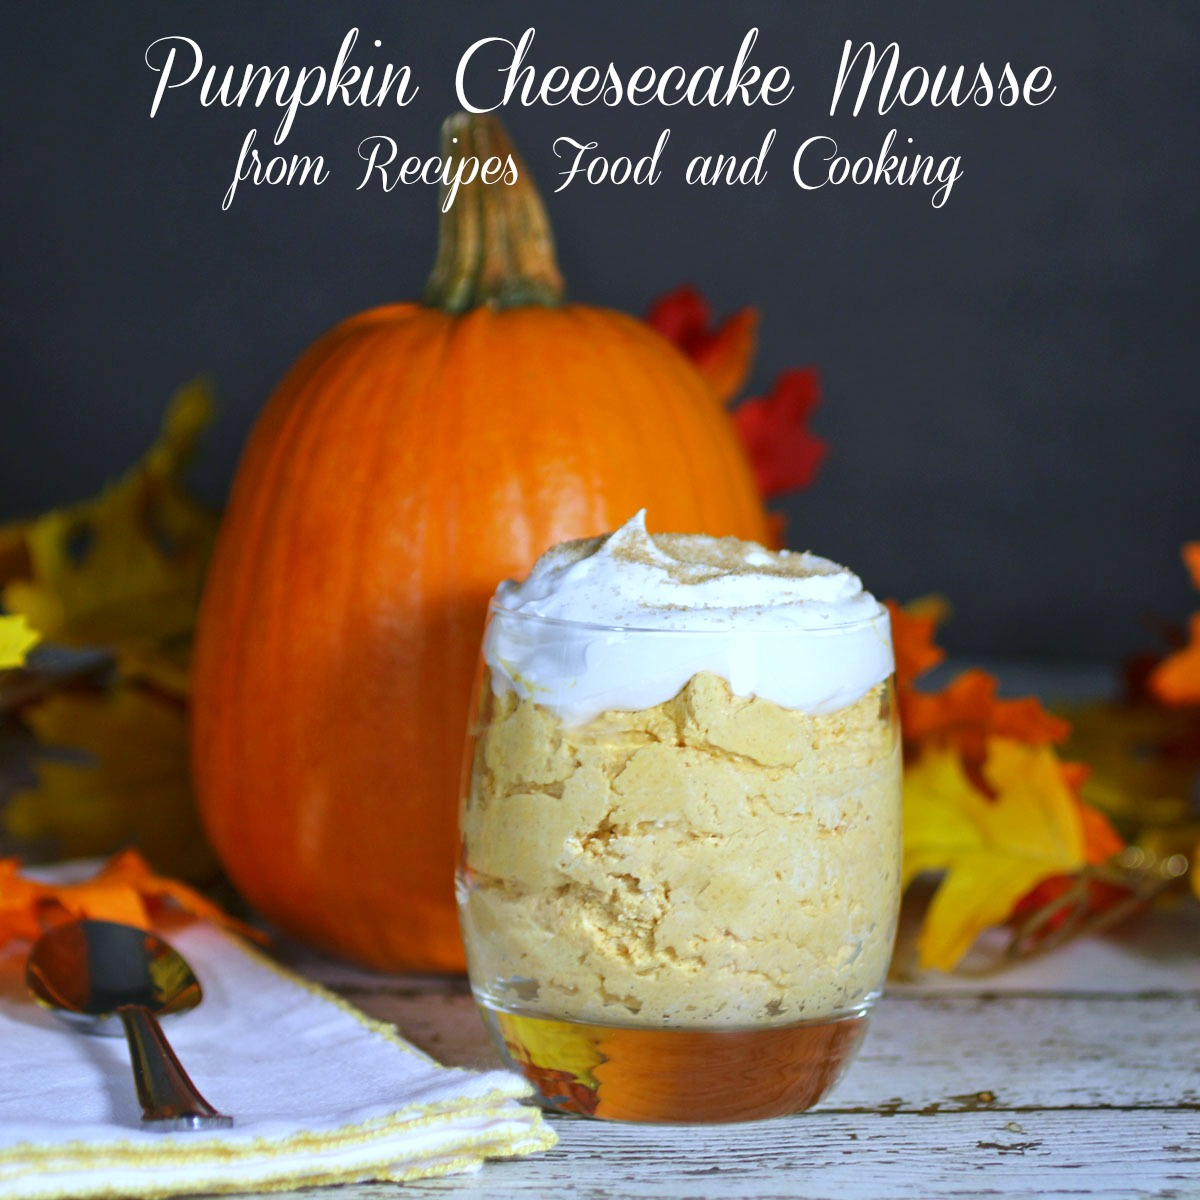 Pumpkin Cheesecake Mousse #PumpkinWeek - Recipes Food and Cooking